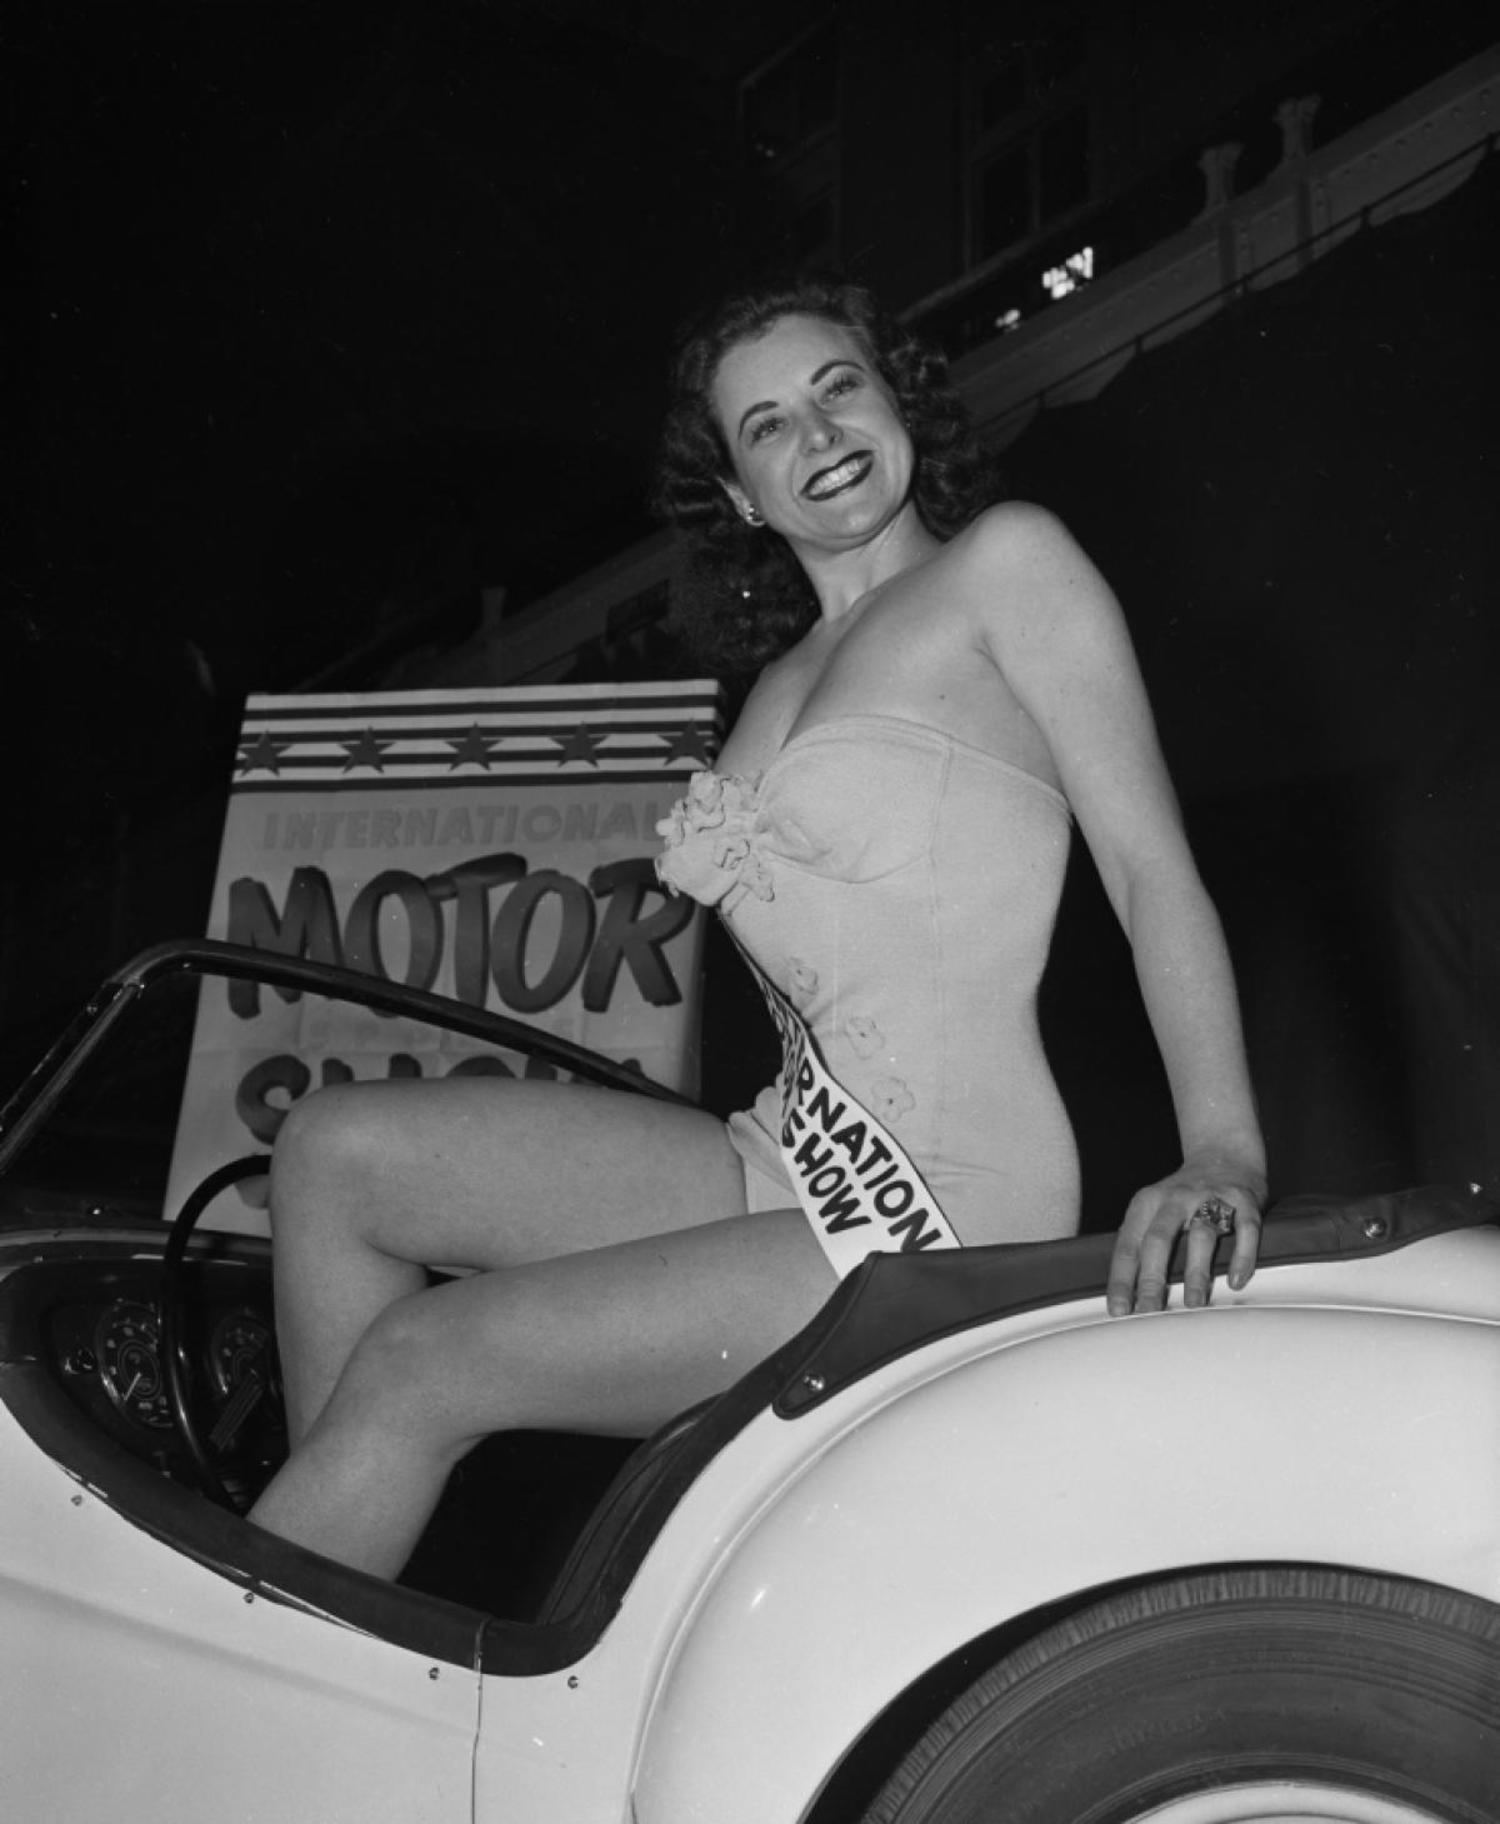 The New York Auto Show became the International Auto Show, as it promoted foreign makes and models. However, no matter the car, models (of the female variety) continued to draw a crowd.